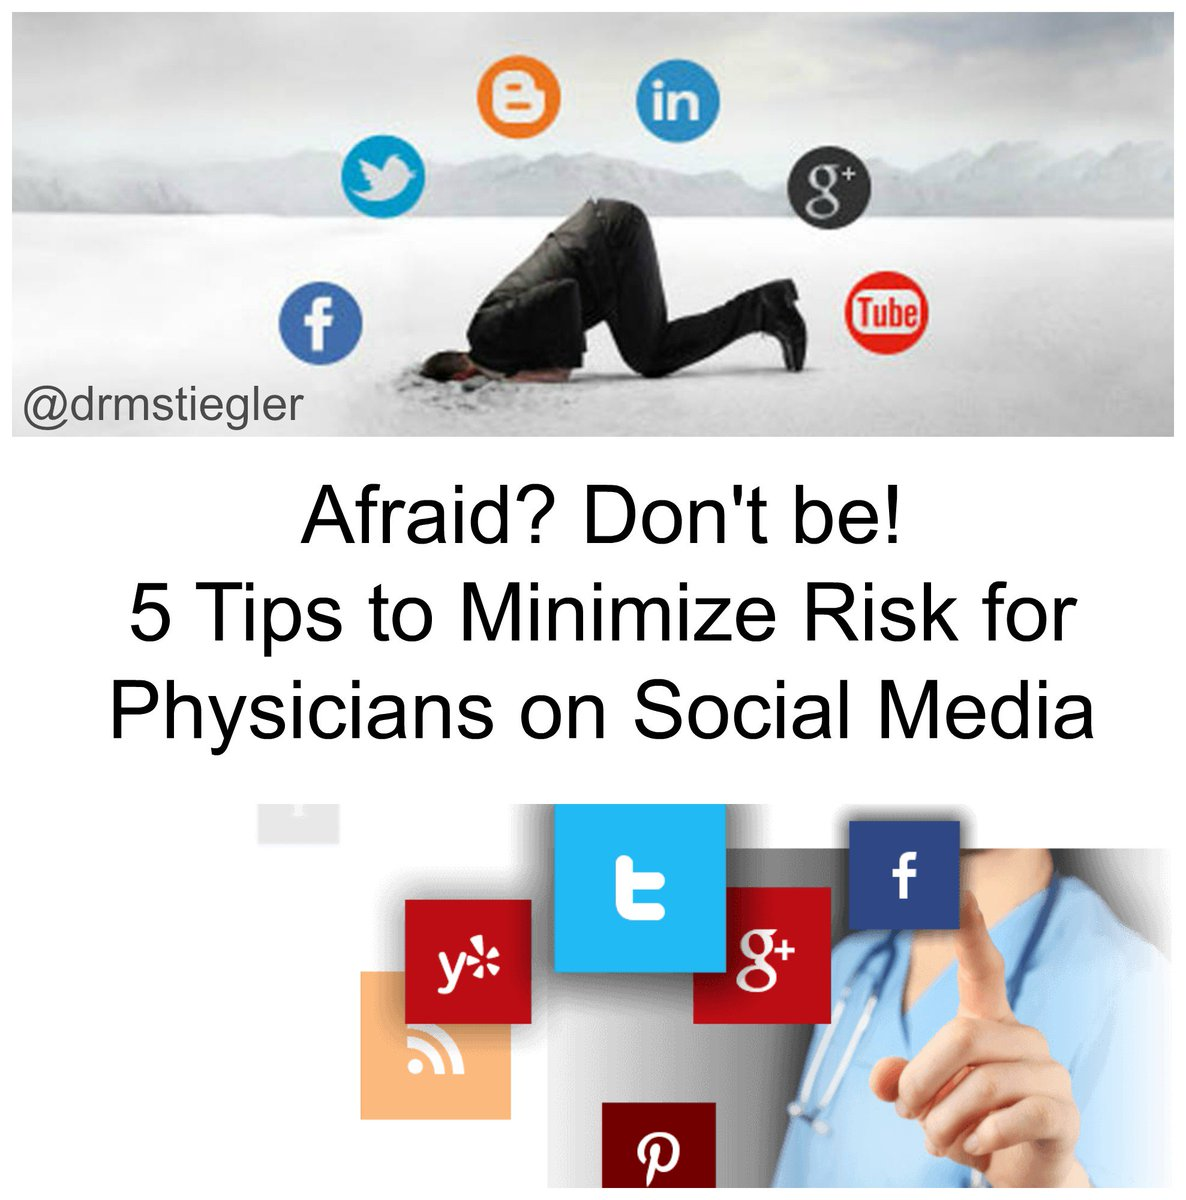 5 tips for avoiding social media mistakes and liability for physicians  #hcsm #SoMe   http:// ow.ly/H0U730g4mmN  &nbsp;   #ANES17<br>http://pic.twitter.com/3hjMiBZqTU